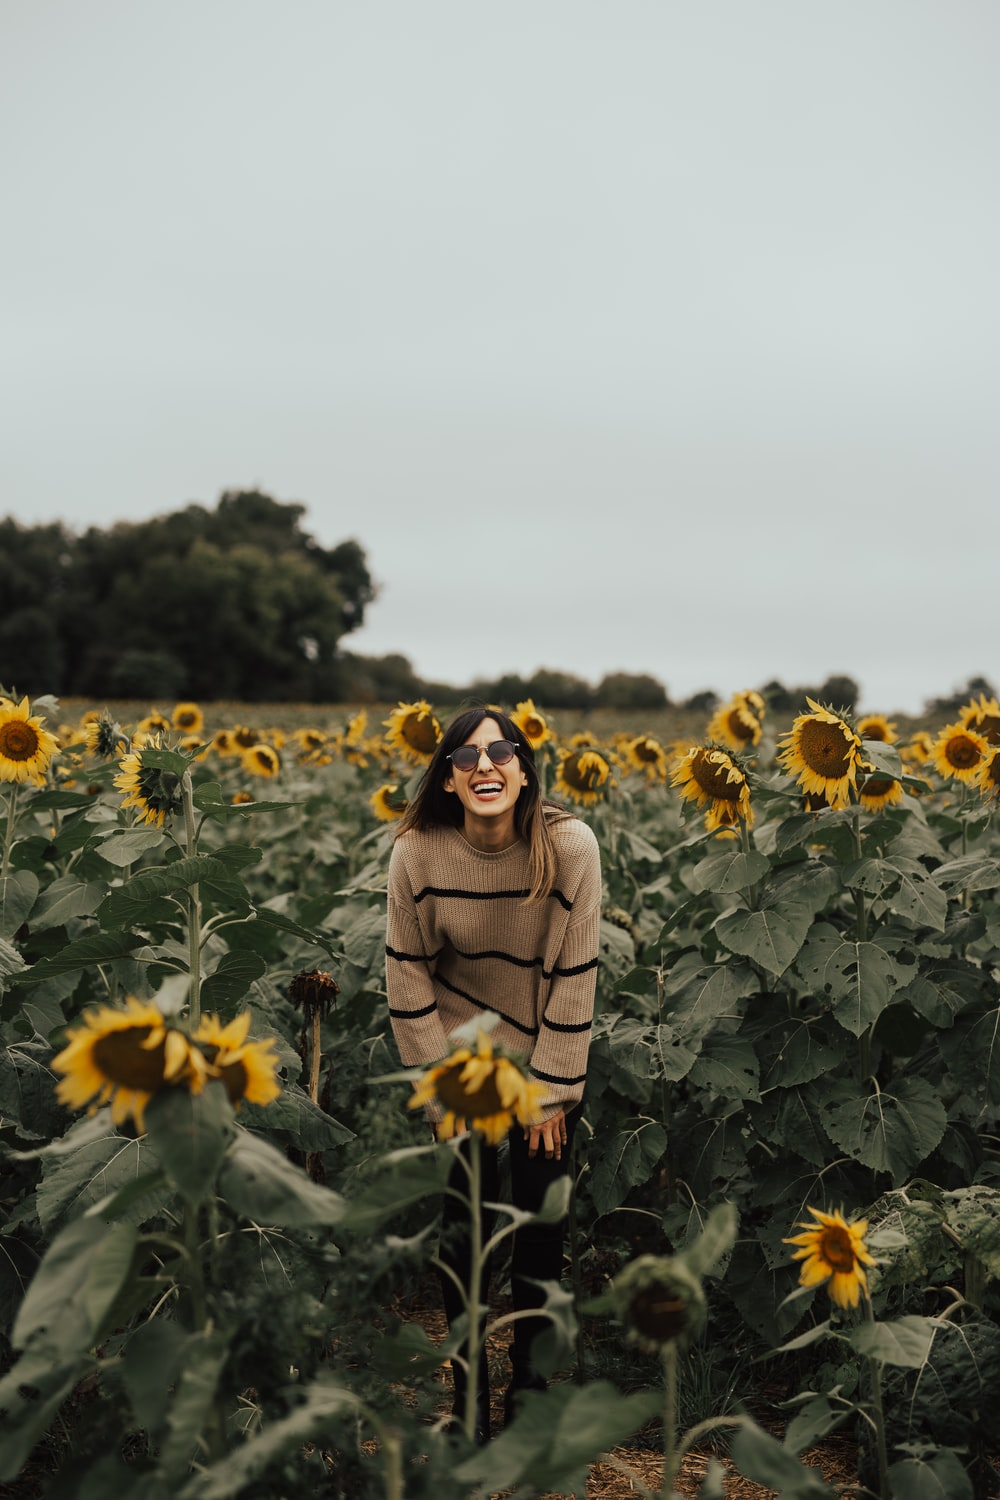 man in black and brown striped sweater standing near sunflower field